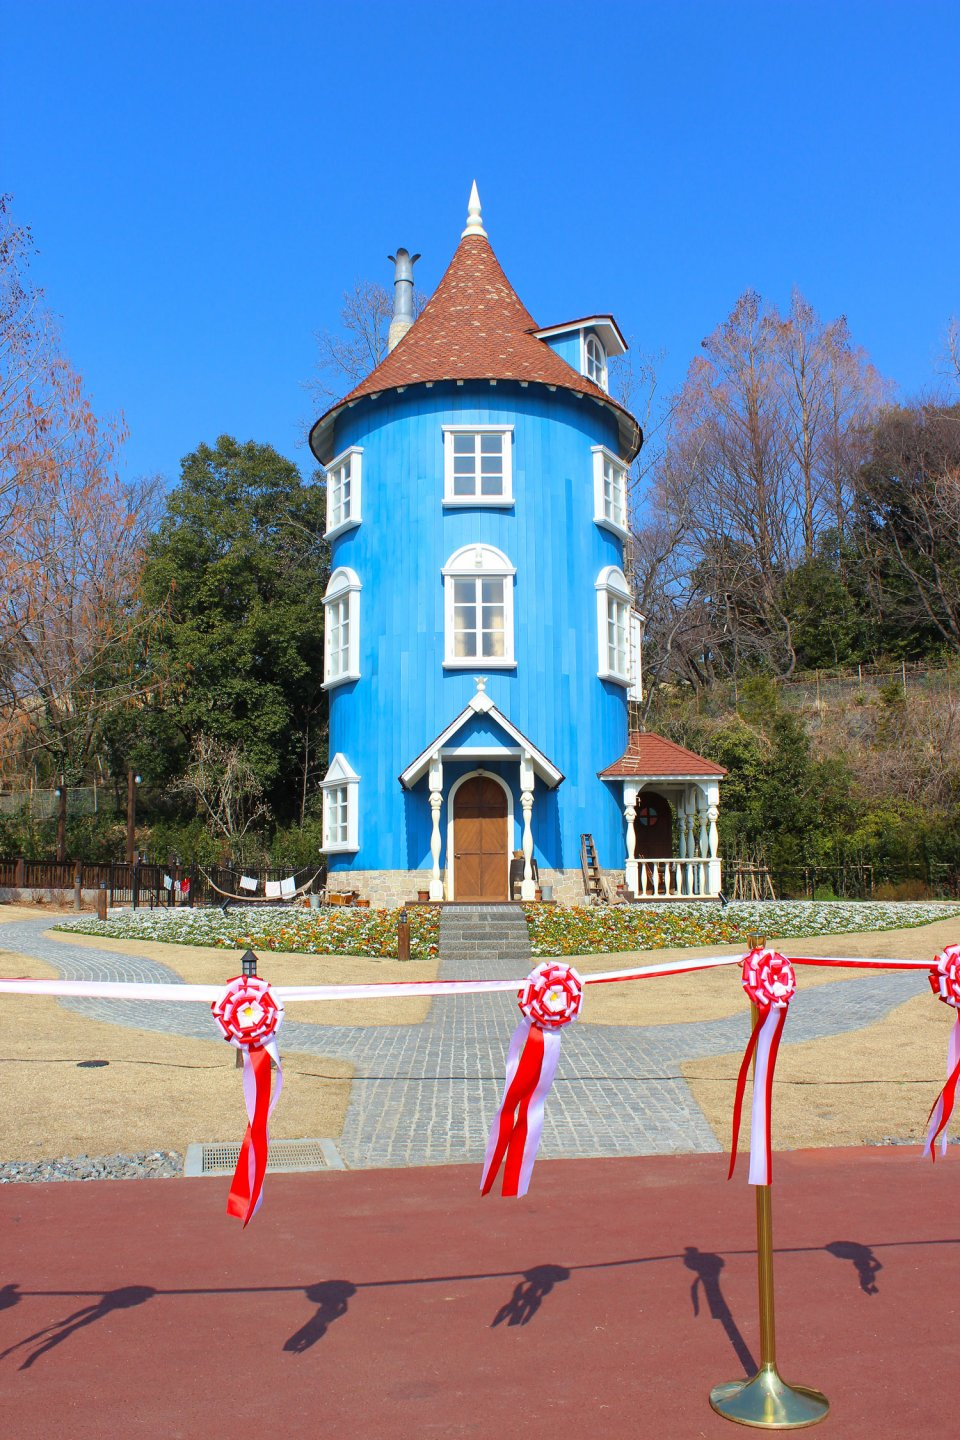 Moominvalley-Park-Japan-Hanno-Opening-Moominhouse-Ribbons